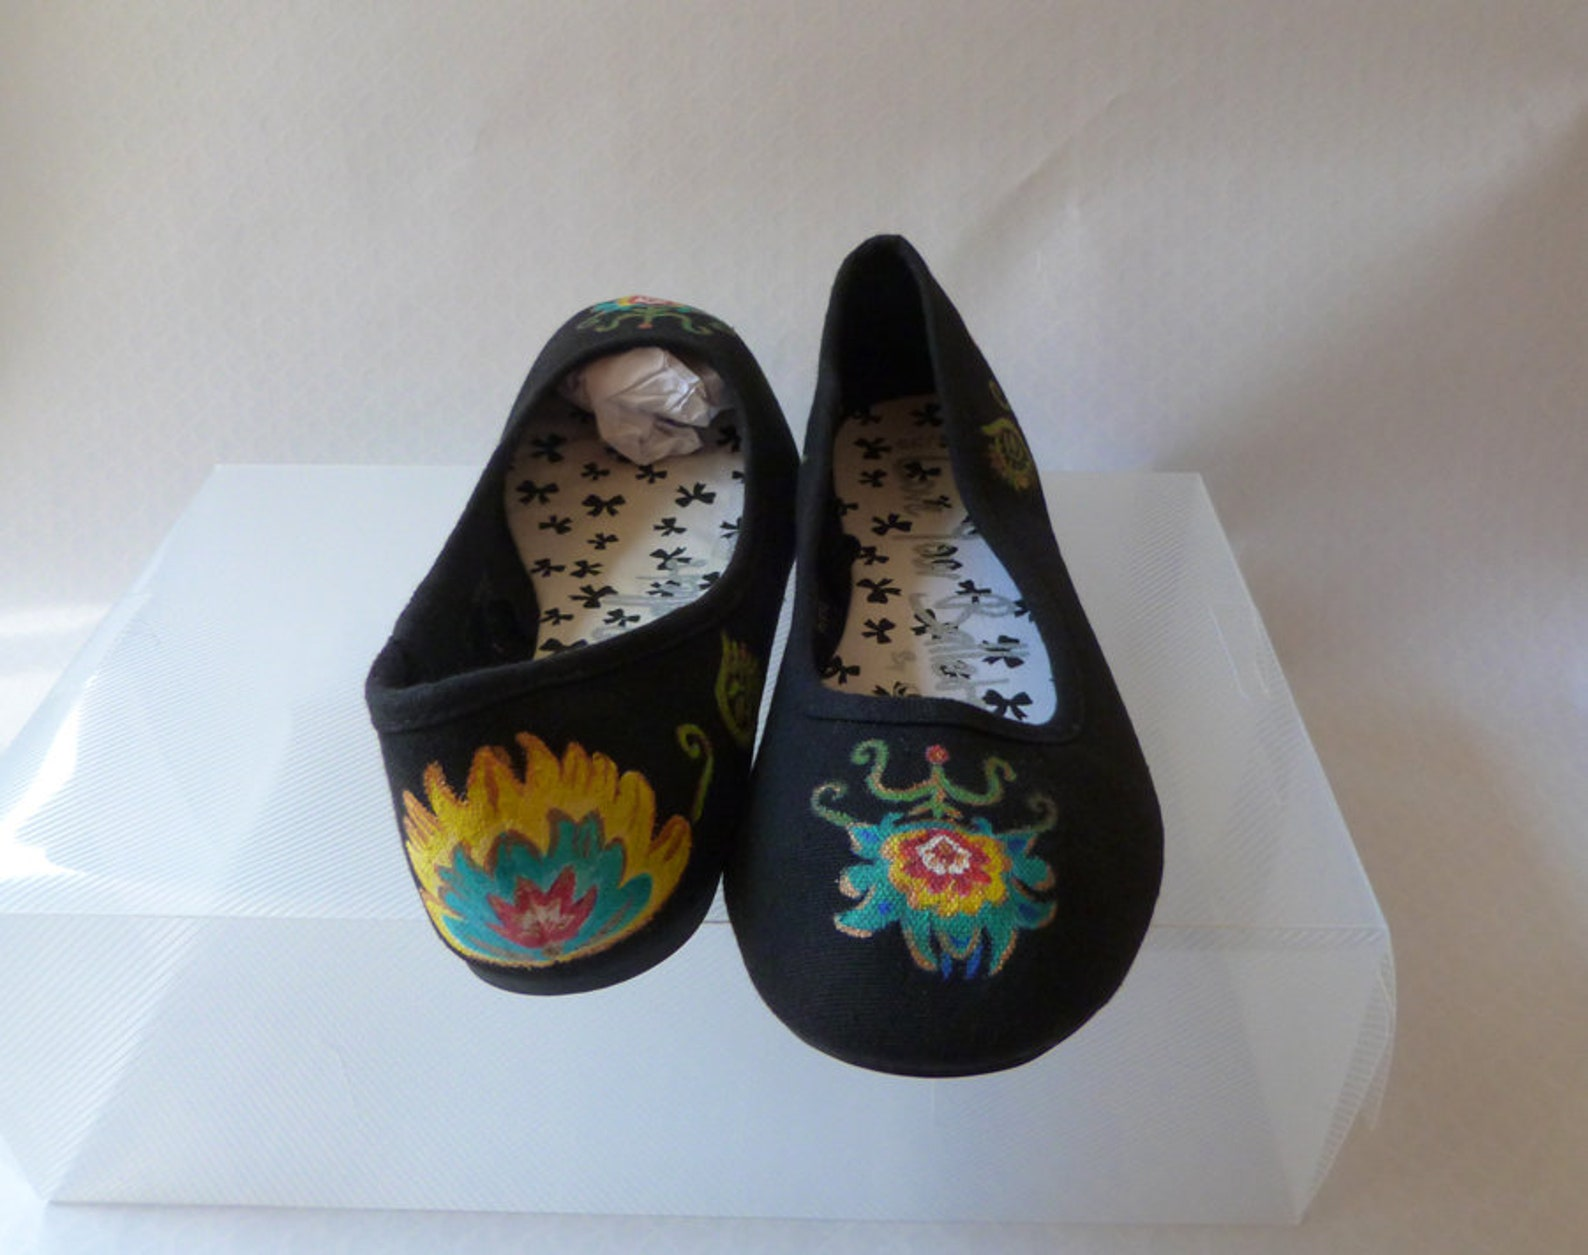 folk art flower decorated black canvas flat ballet pumps uk 6 eu 39.5 us 8.5